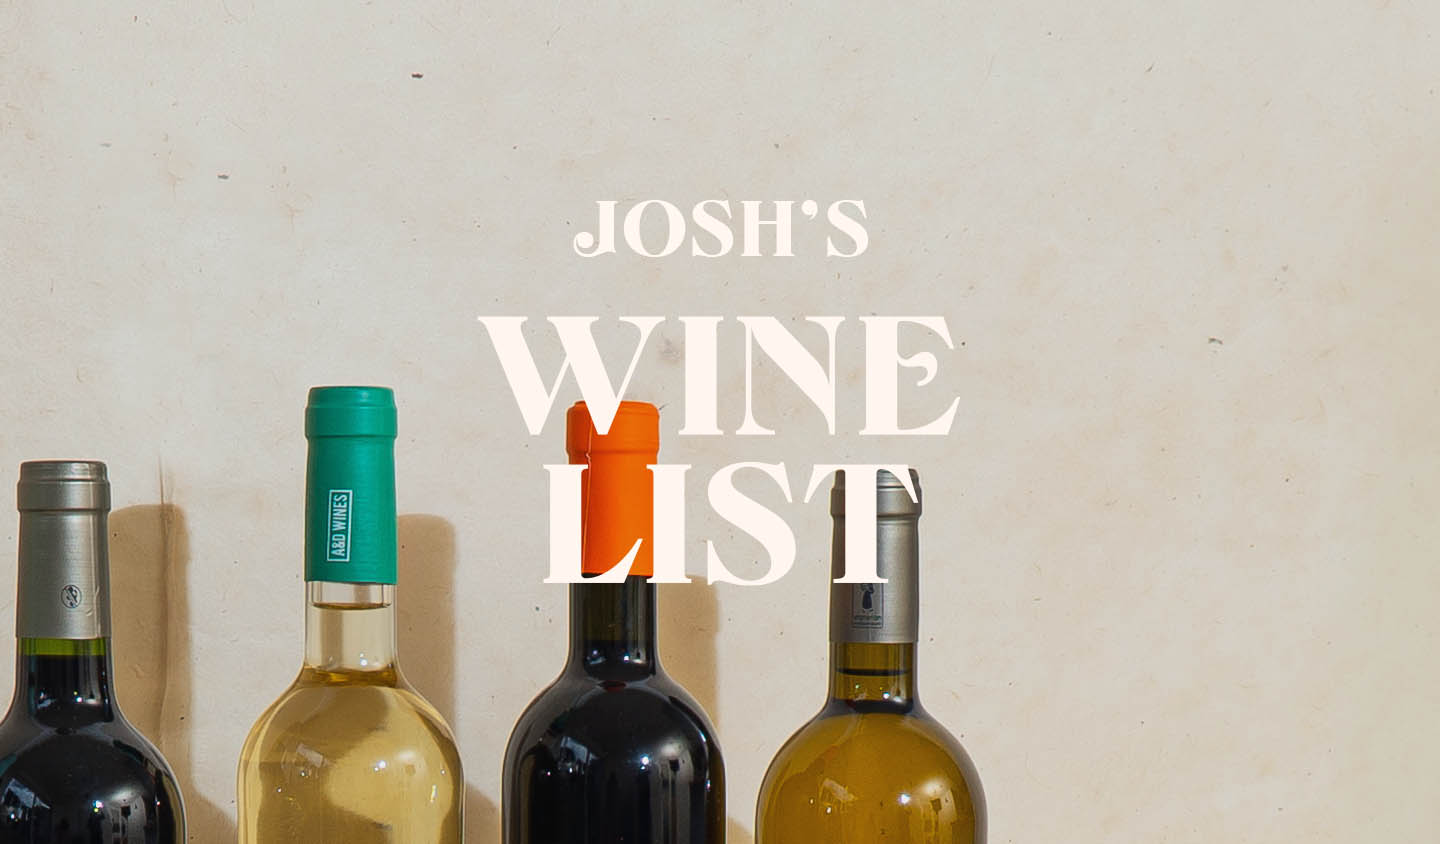 JWL Issue #153: 3 Summer Wines & canned wine versus glass bottles